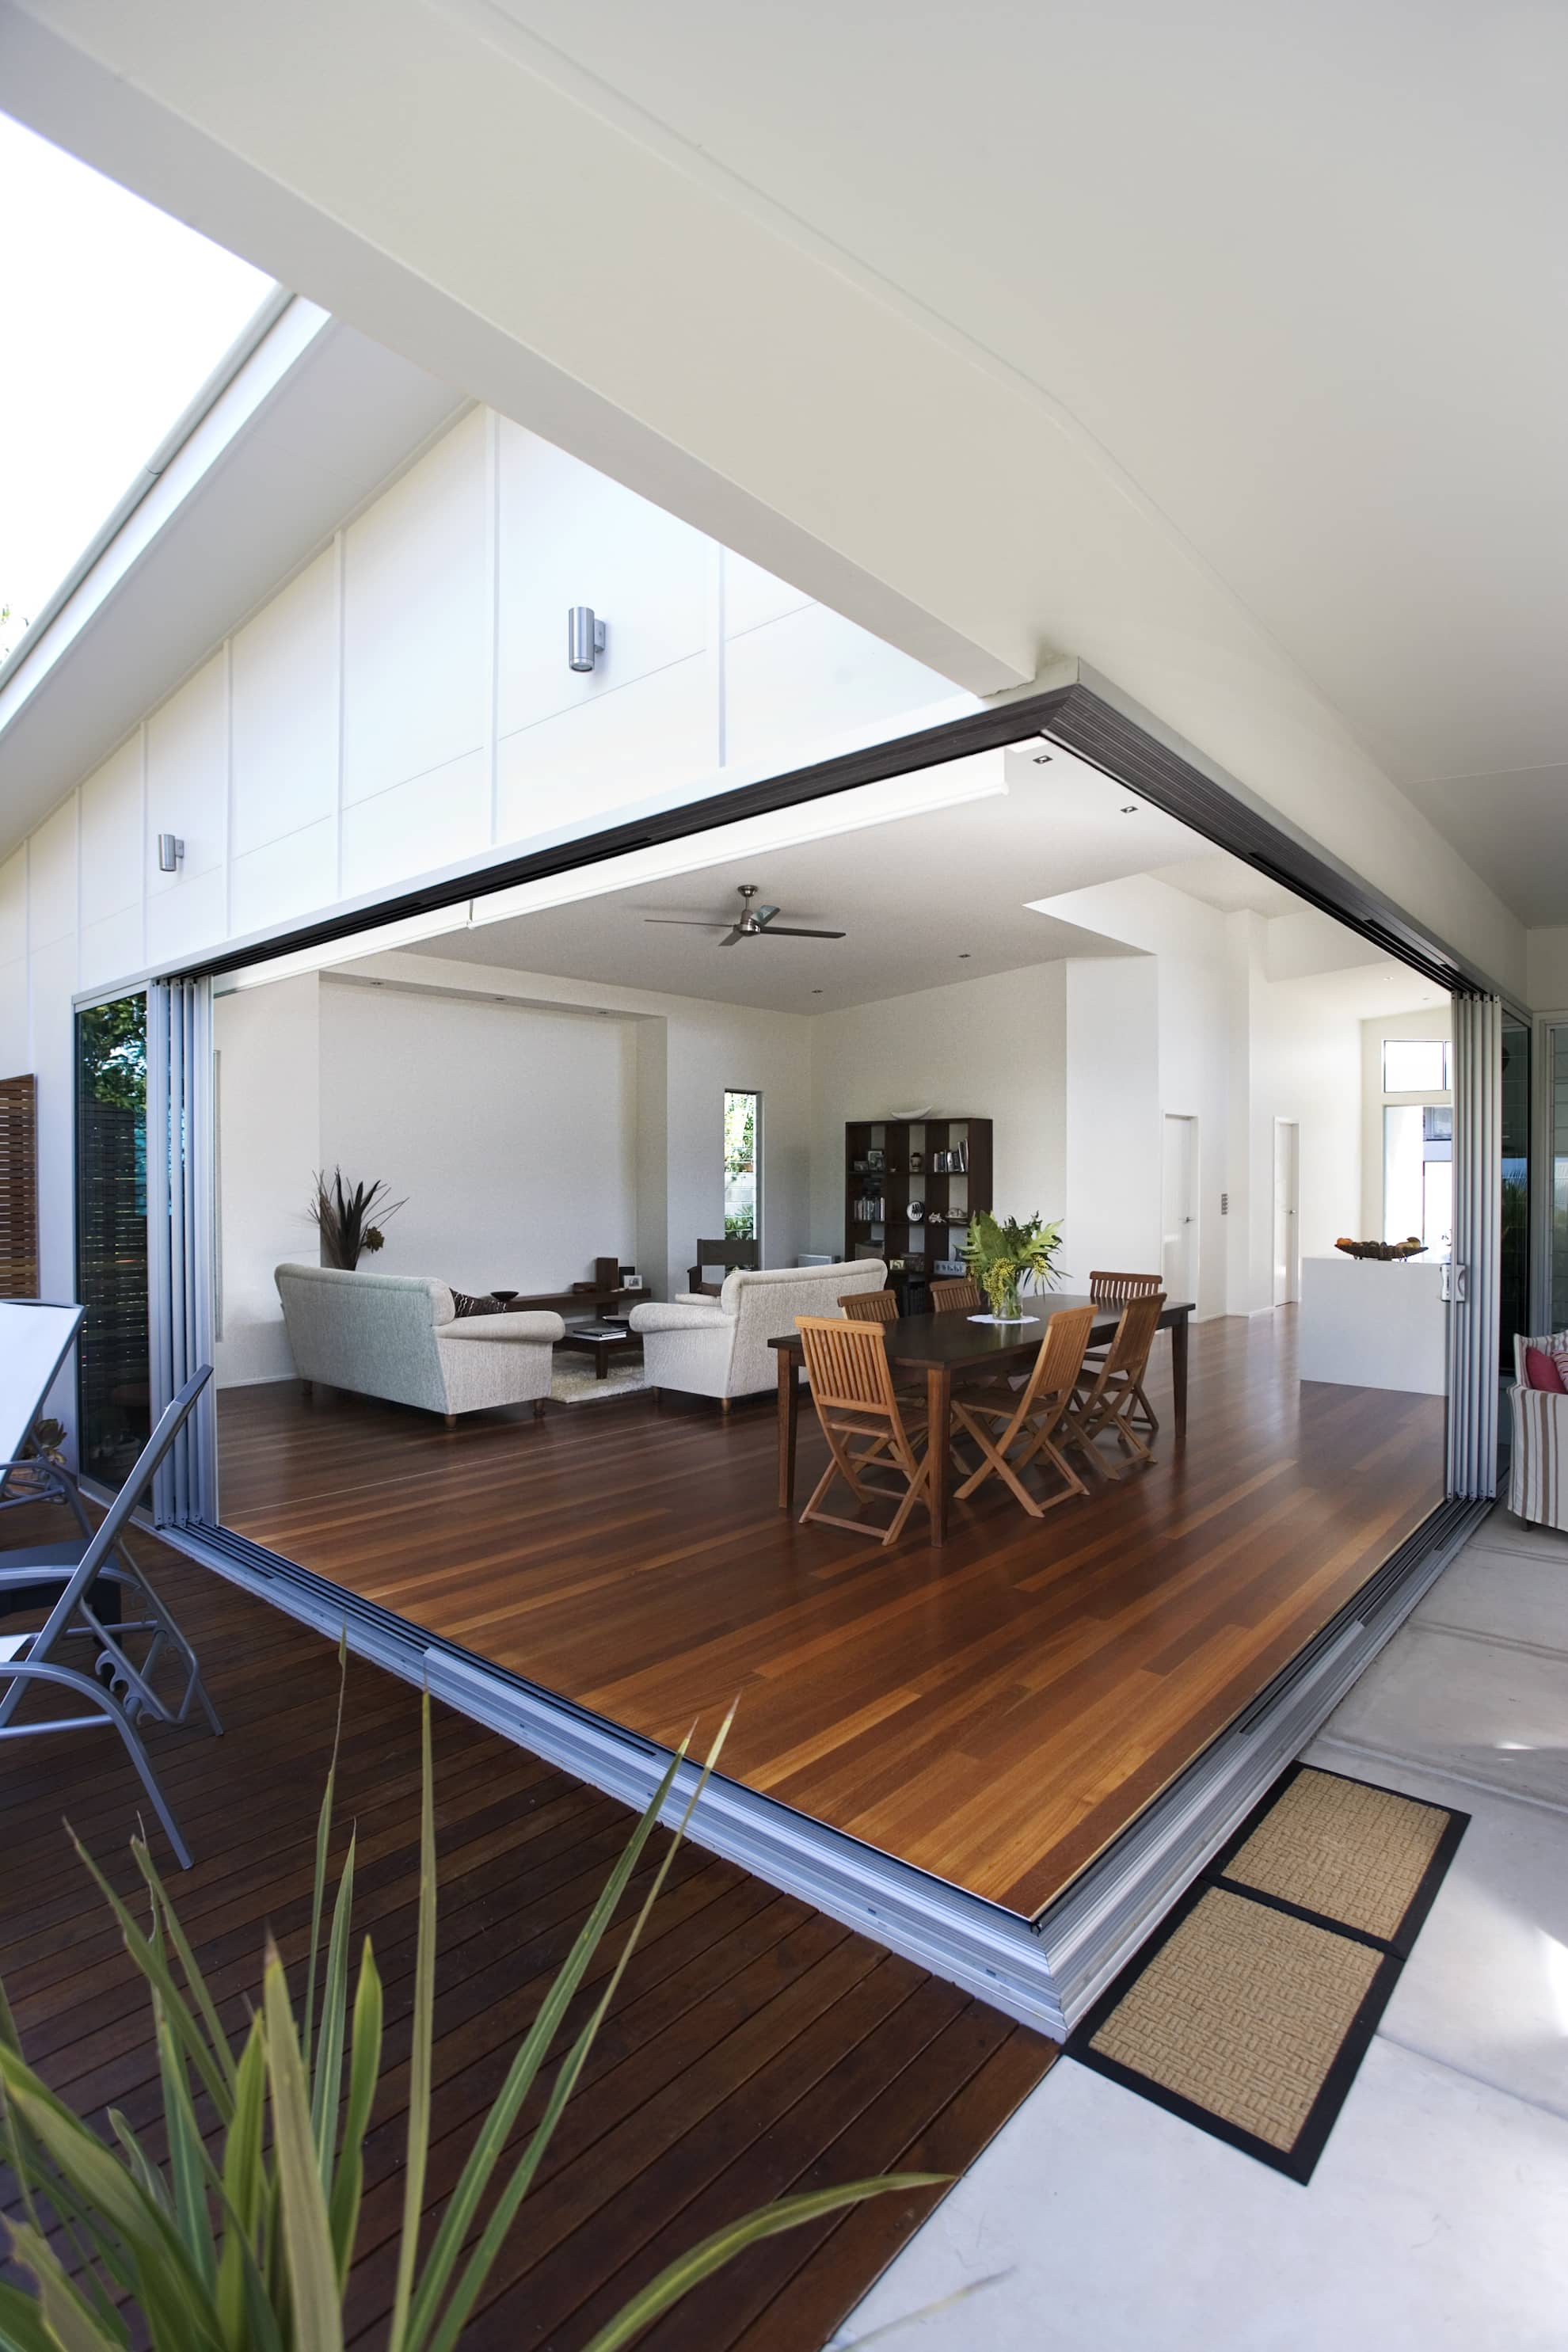 Oceania Crescent project by mdesign, a building design practice that operates on the Sunshine Coast.